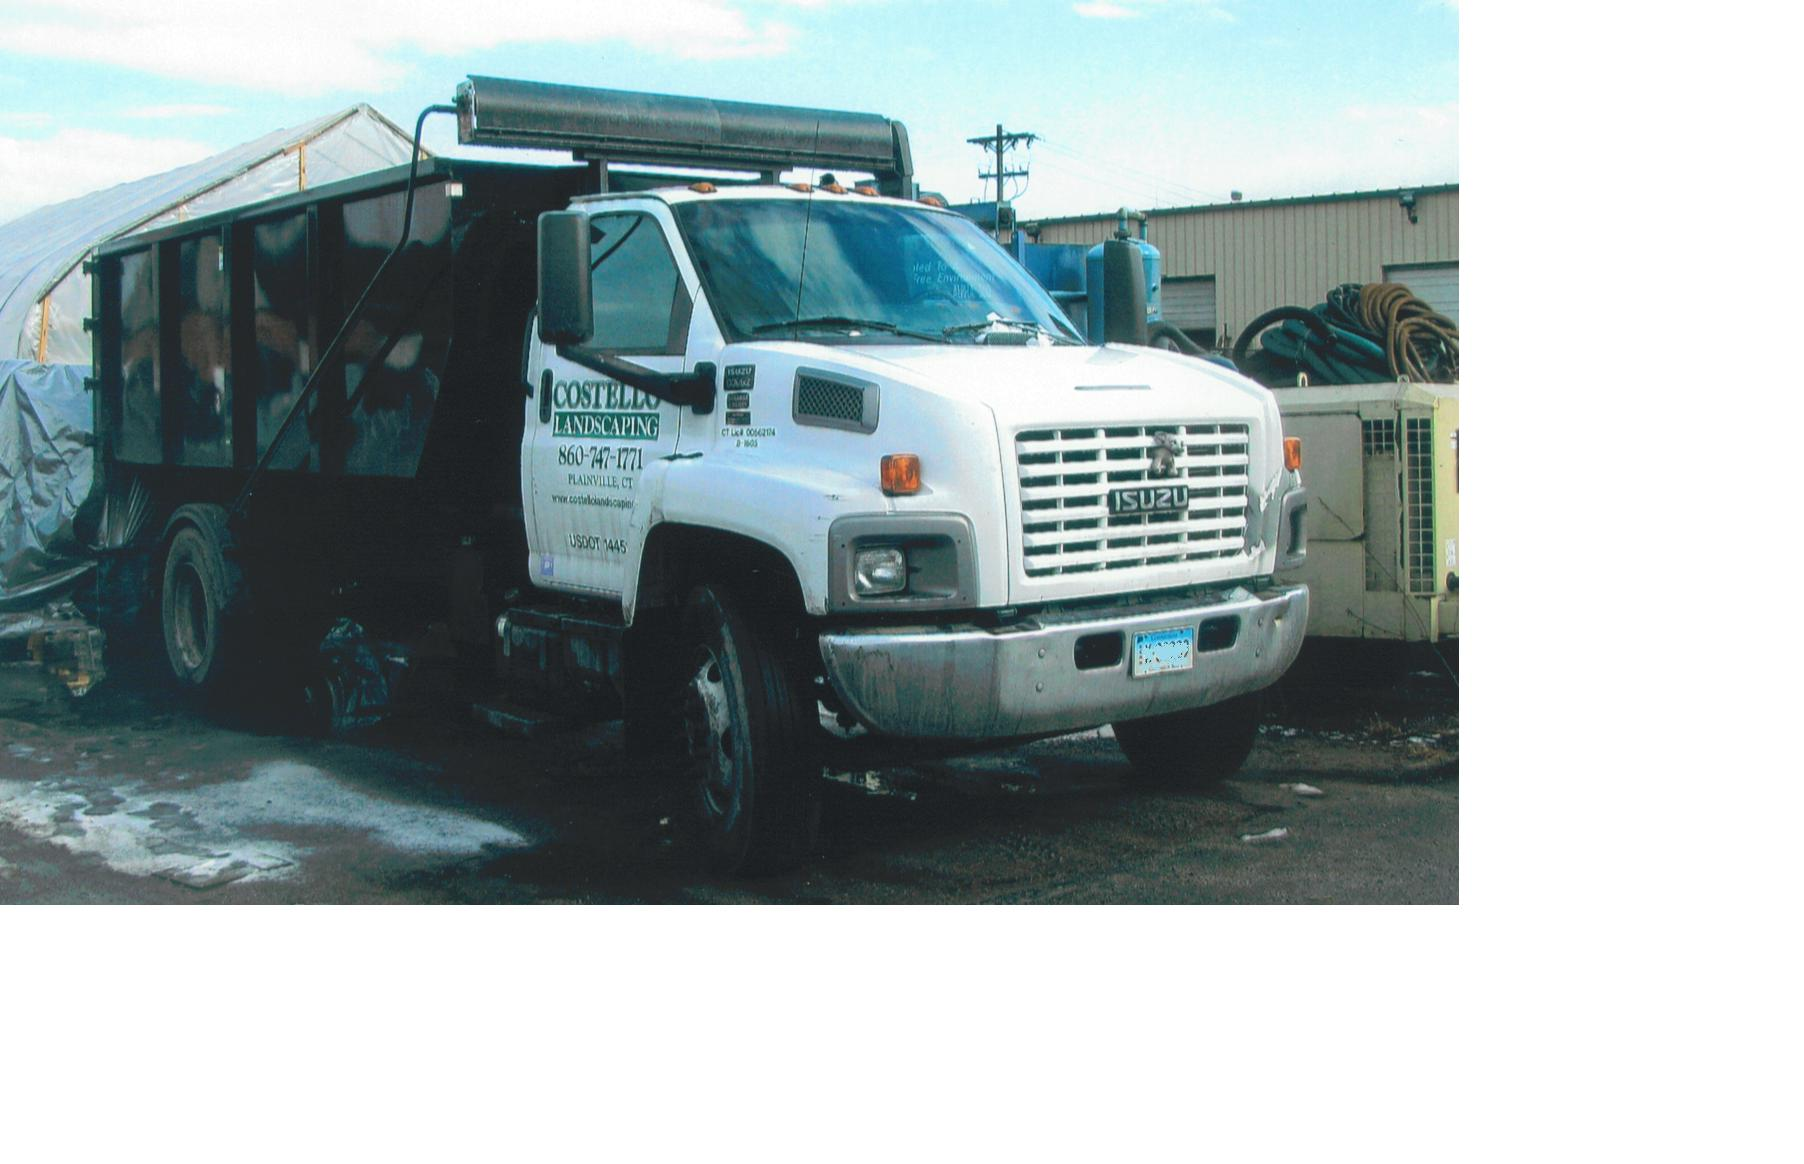 Local Dumpster Rental in CT How do I rent a dumpster in CT Who do I call to rent a dumpster in CT Local Dumpster Rental in CT